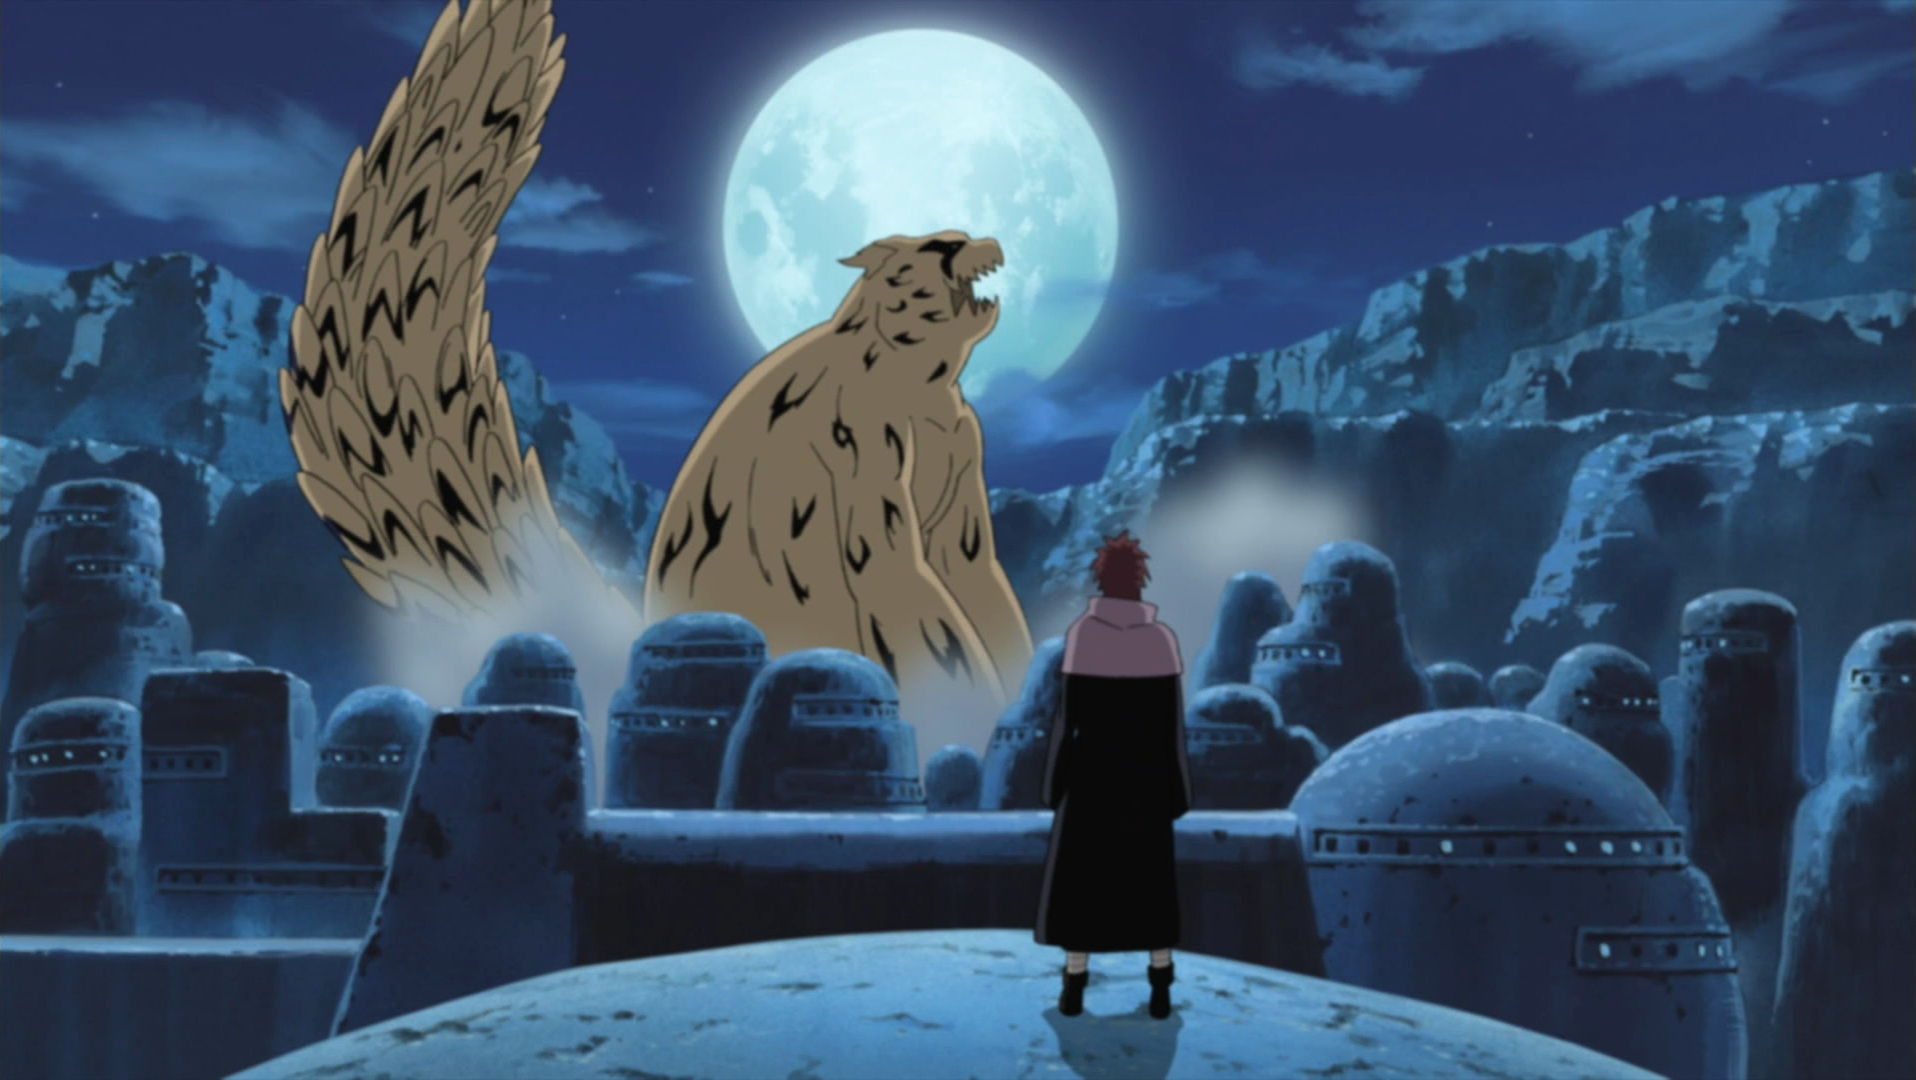 http://images3.wikia.nocookie.net/__cb20130124131239/naruto/images/0/08/Gaara_lost_control.png